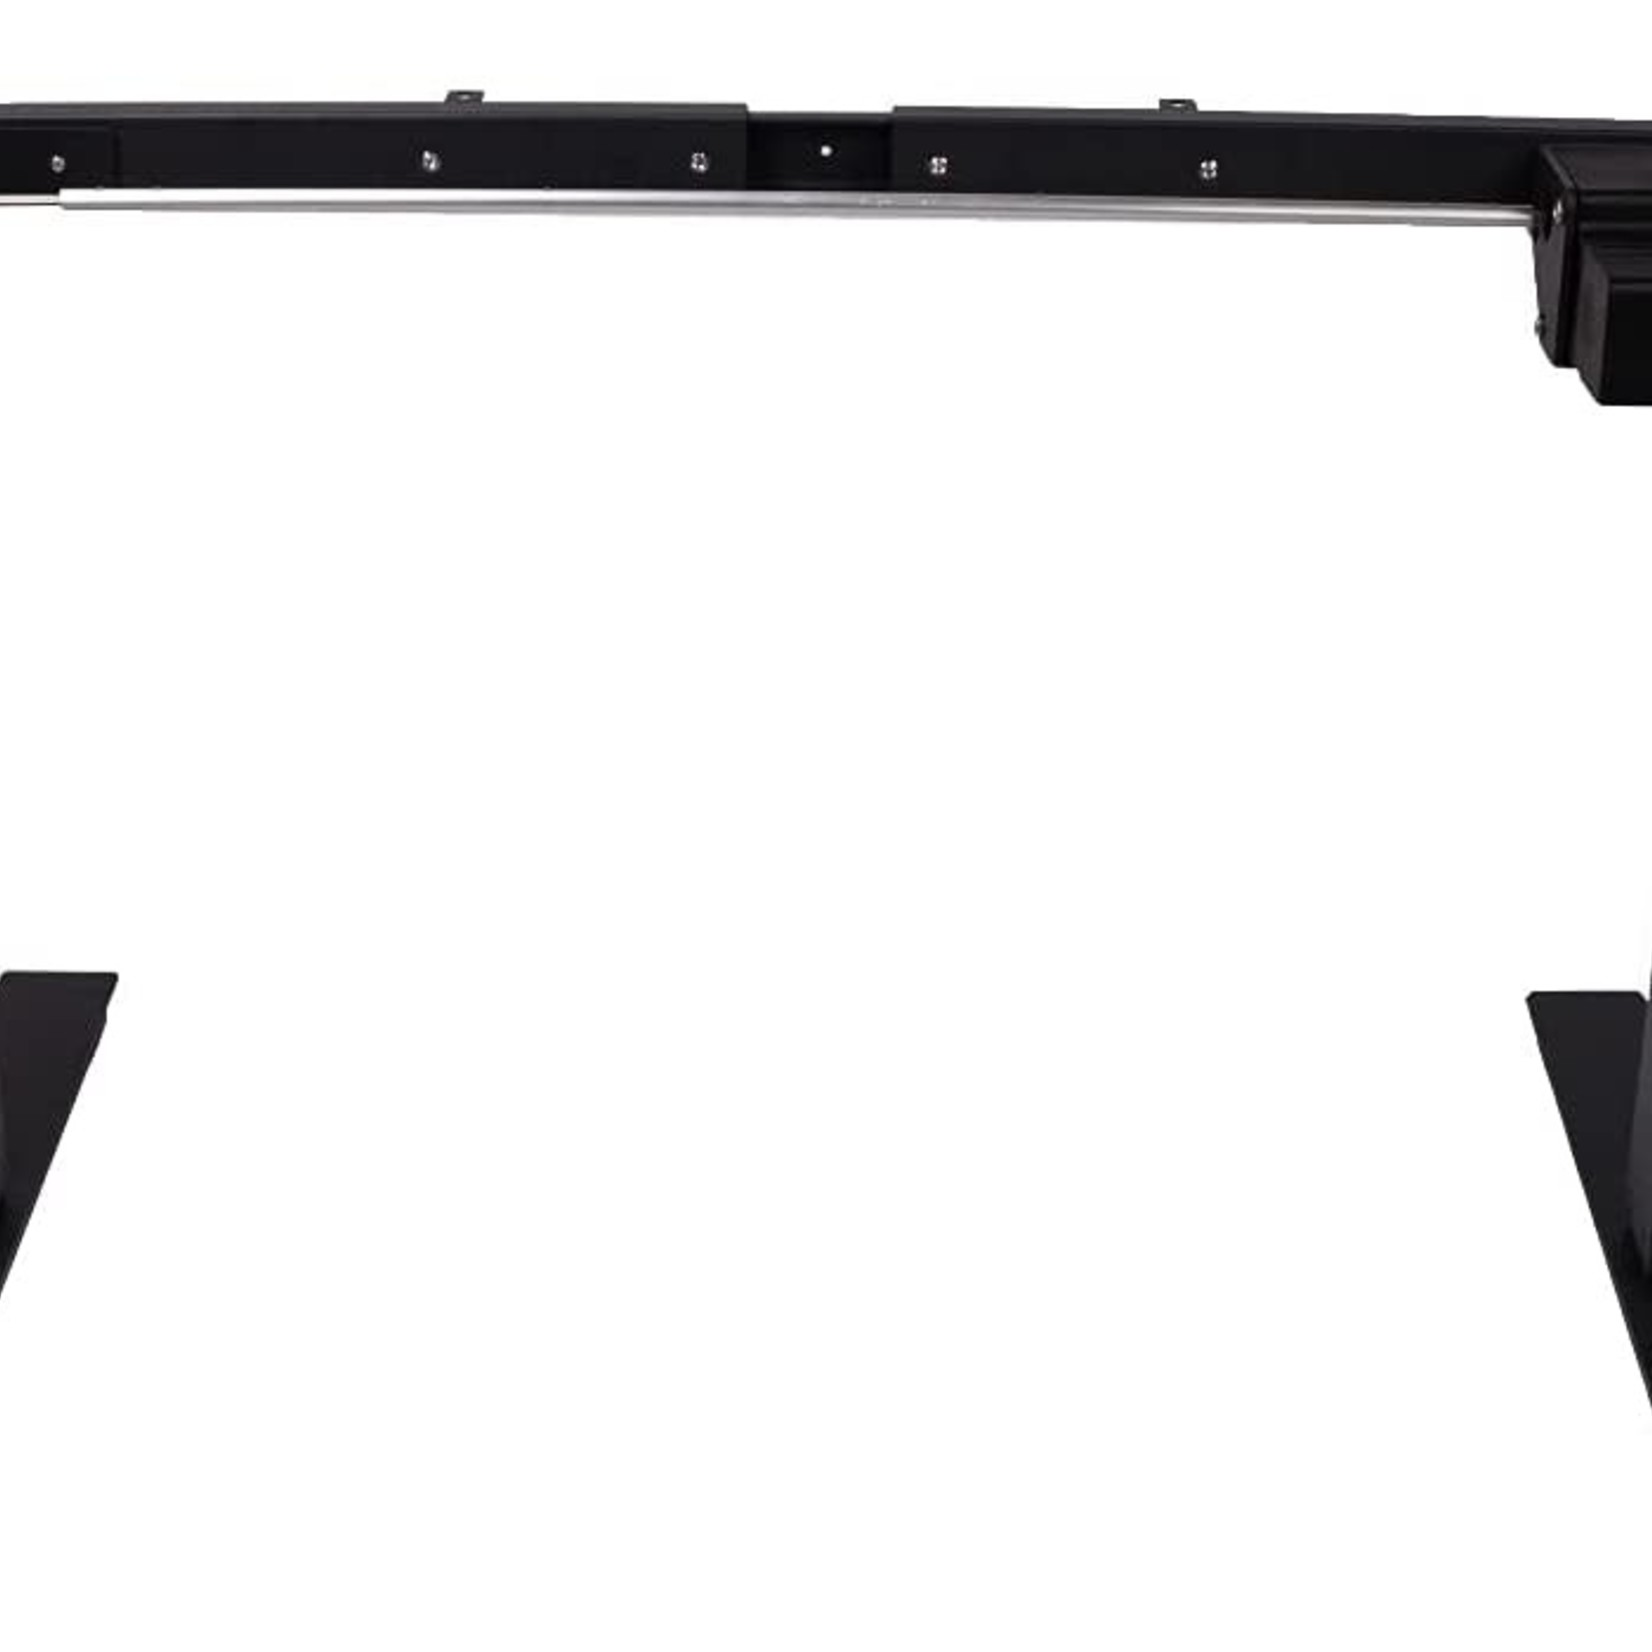 AnthroDesk Sit to Stand Electric Adjustable Height Standing Desk with Easy Up/Down Controls (Black Programmable)